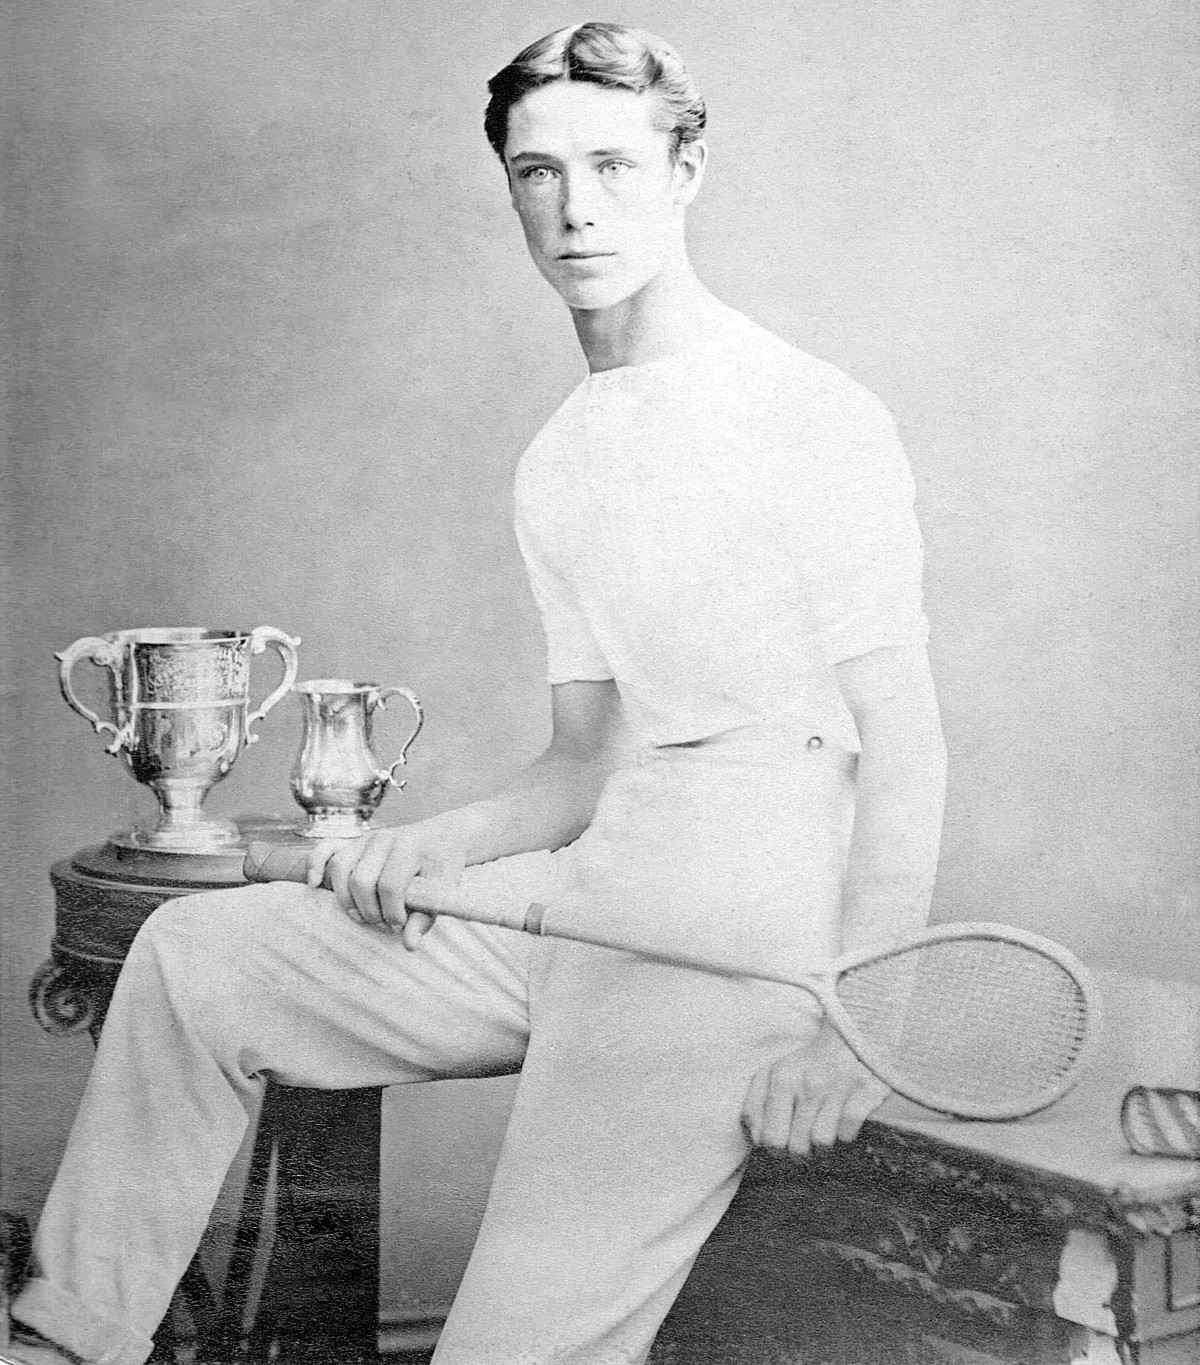 Cuthbert Ottaway has been recognised as England's captain for their first 'official' international against Scotland in 1872.